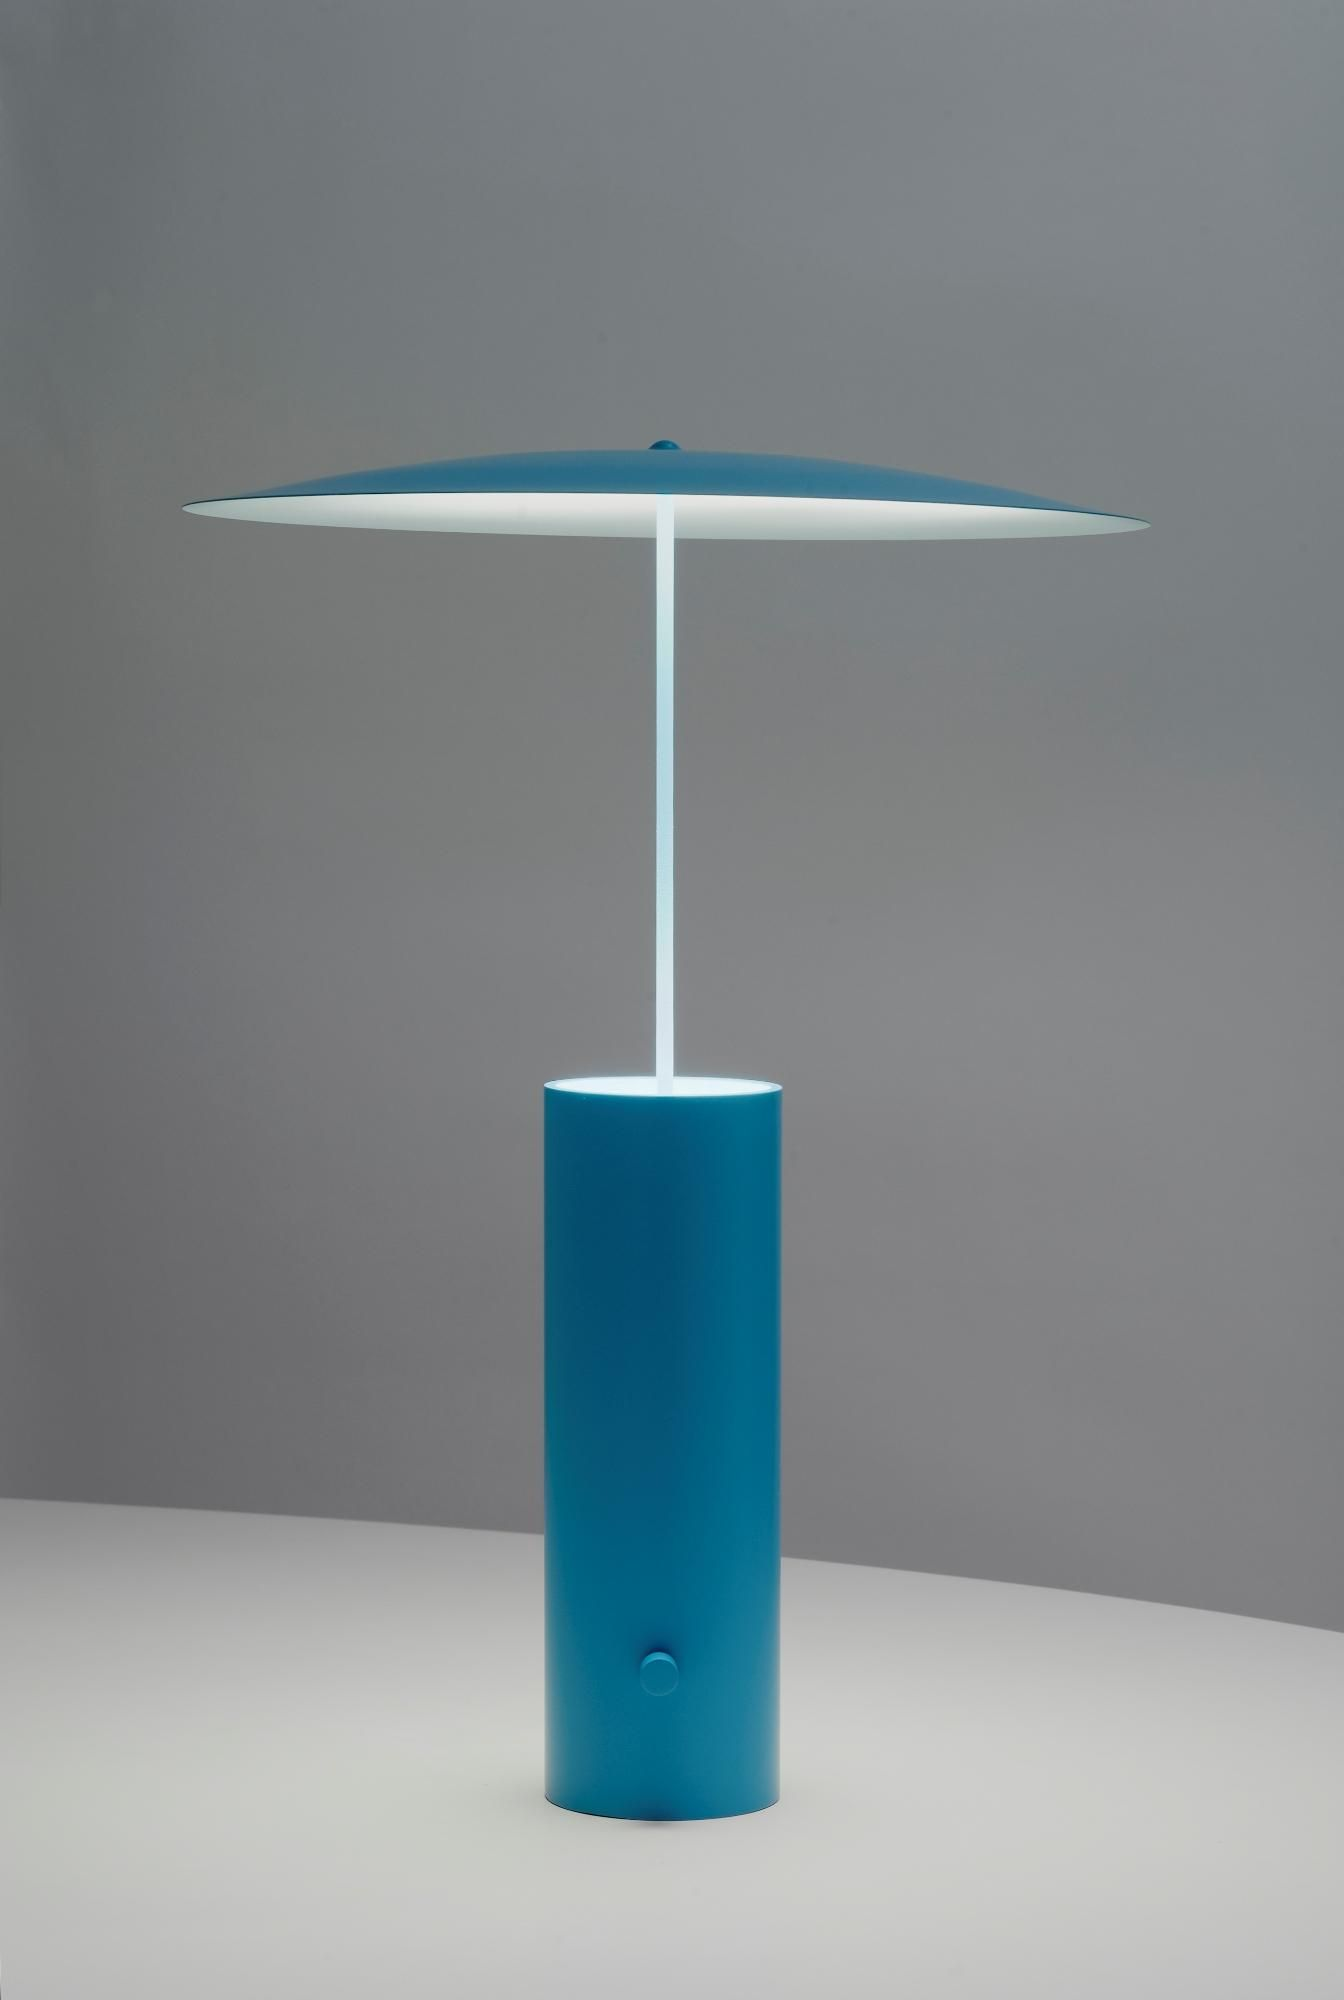 Verlichting Voor Parasol The Parasol Lamp By Jonas Forsman Uses Reflected Light Softer